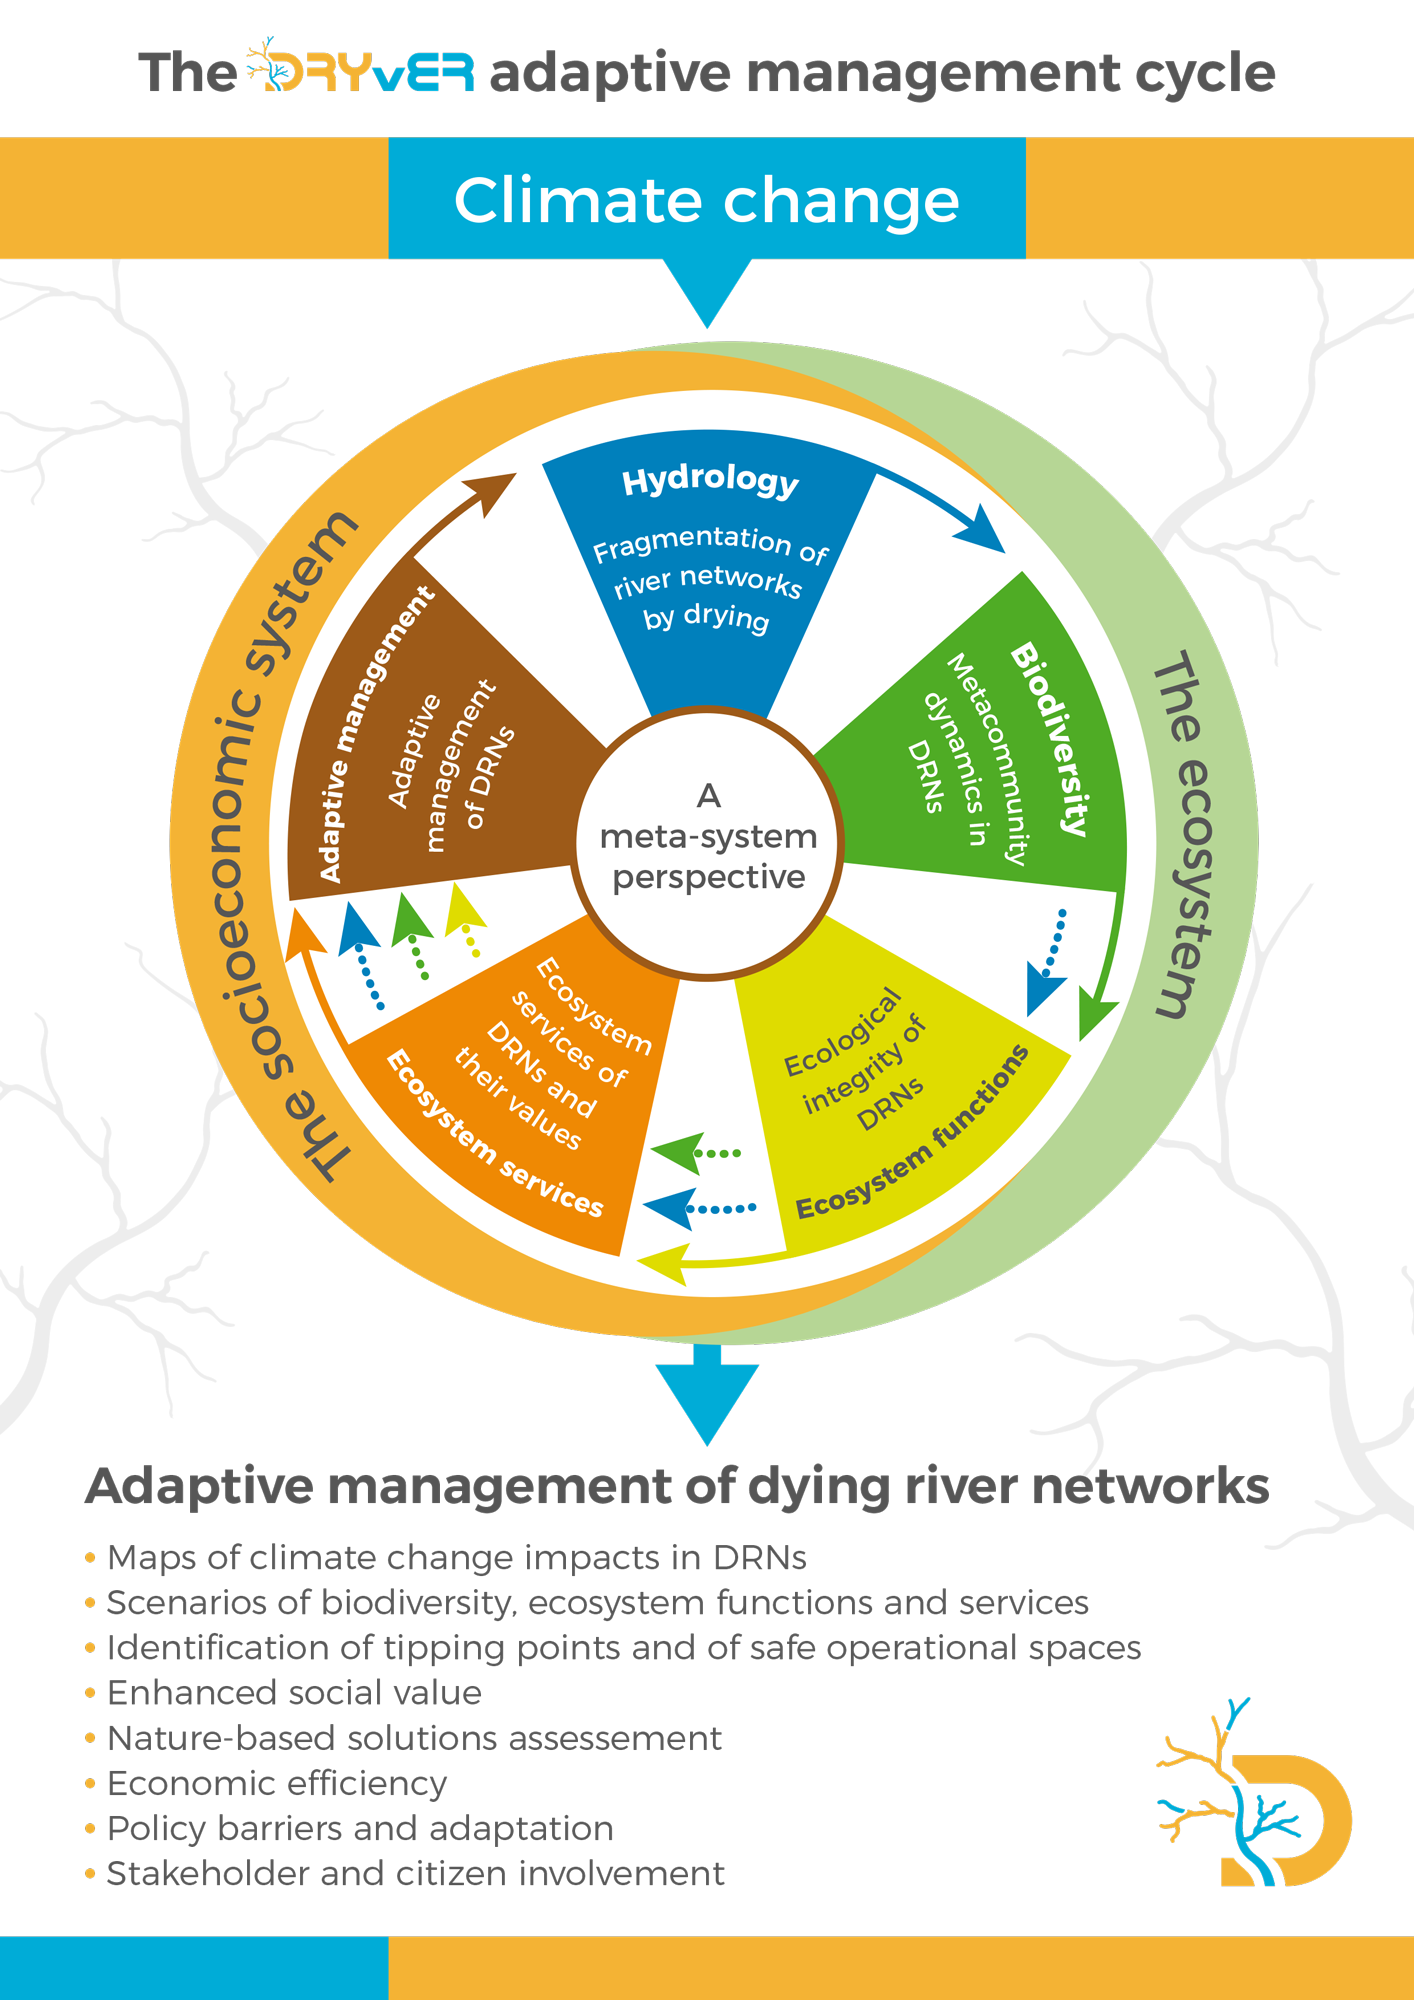 Adaptive management of dying river networks